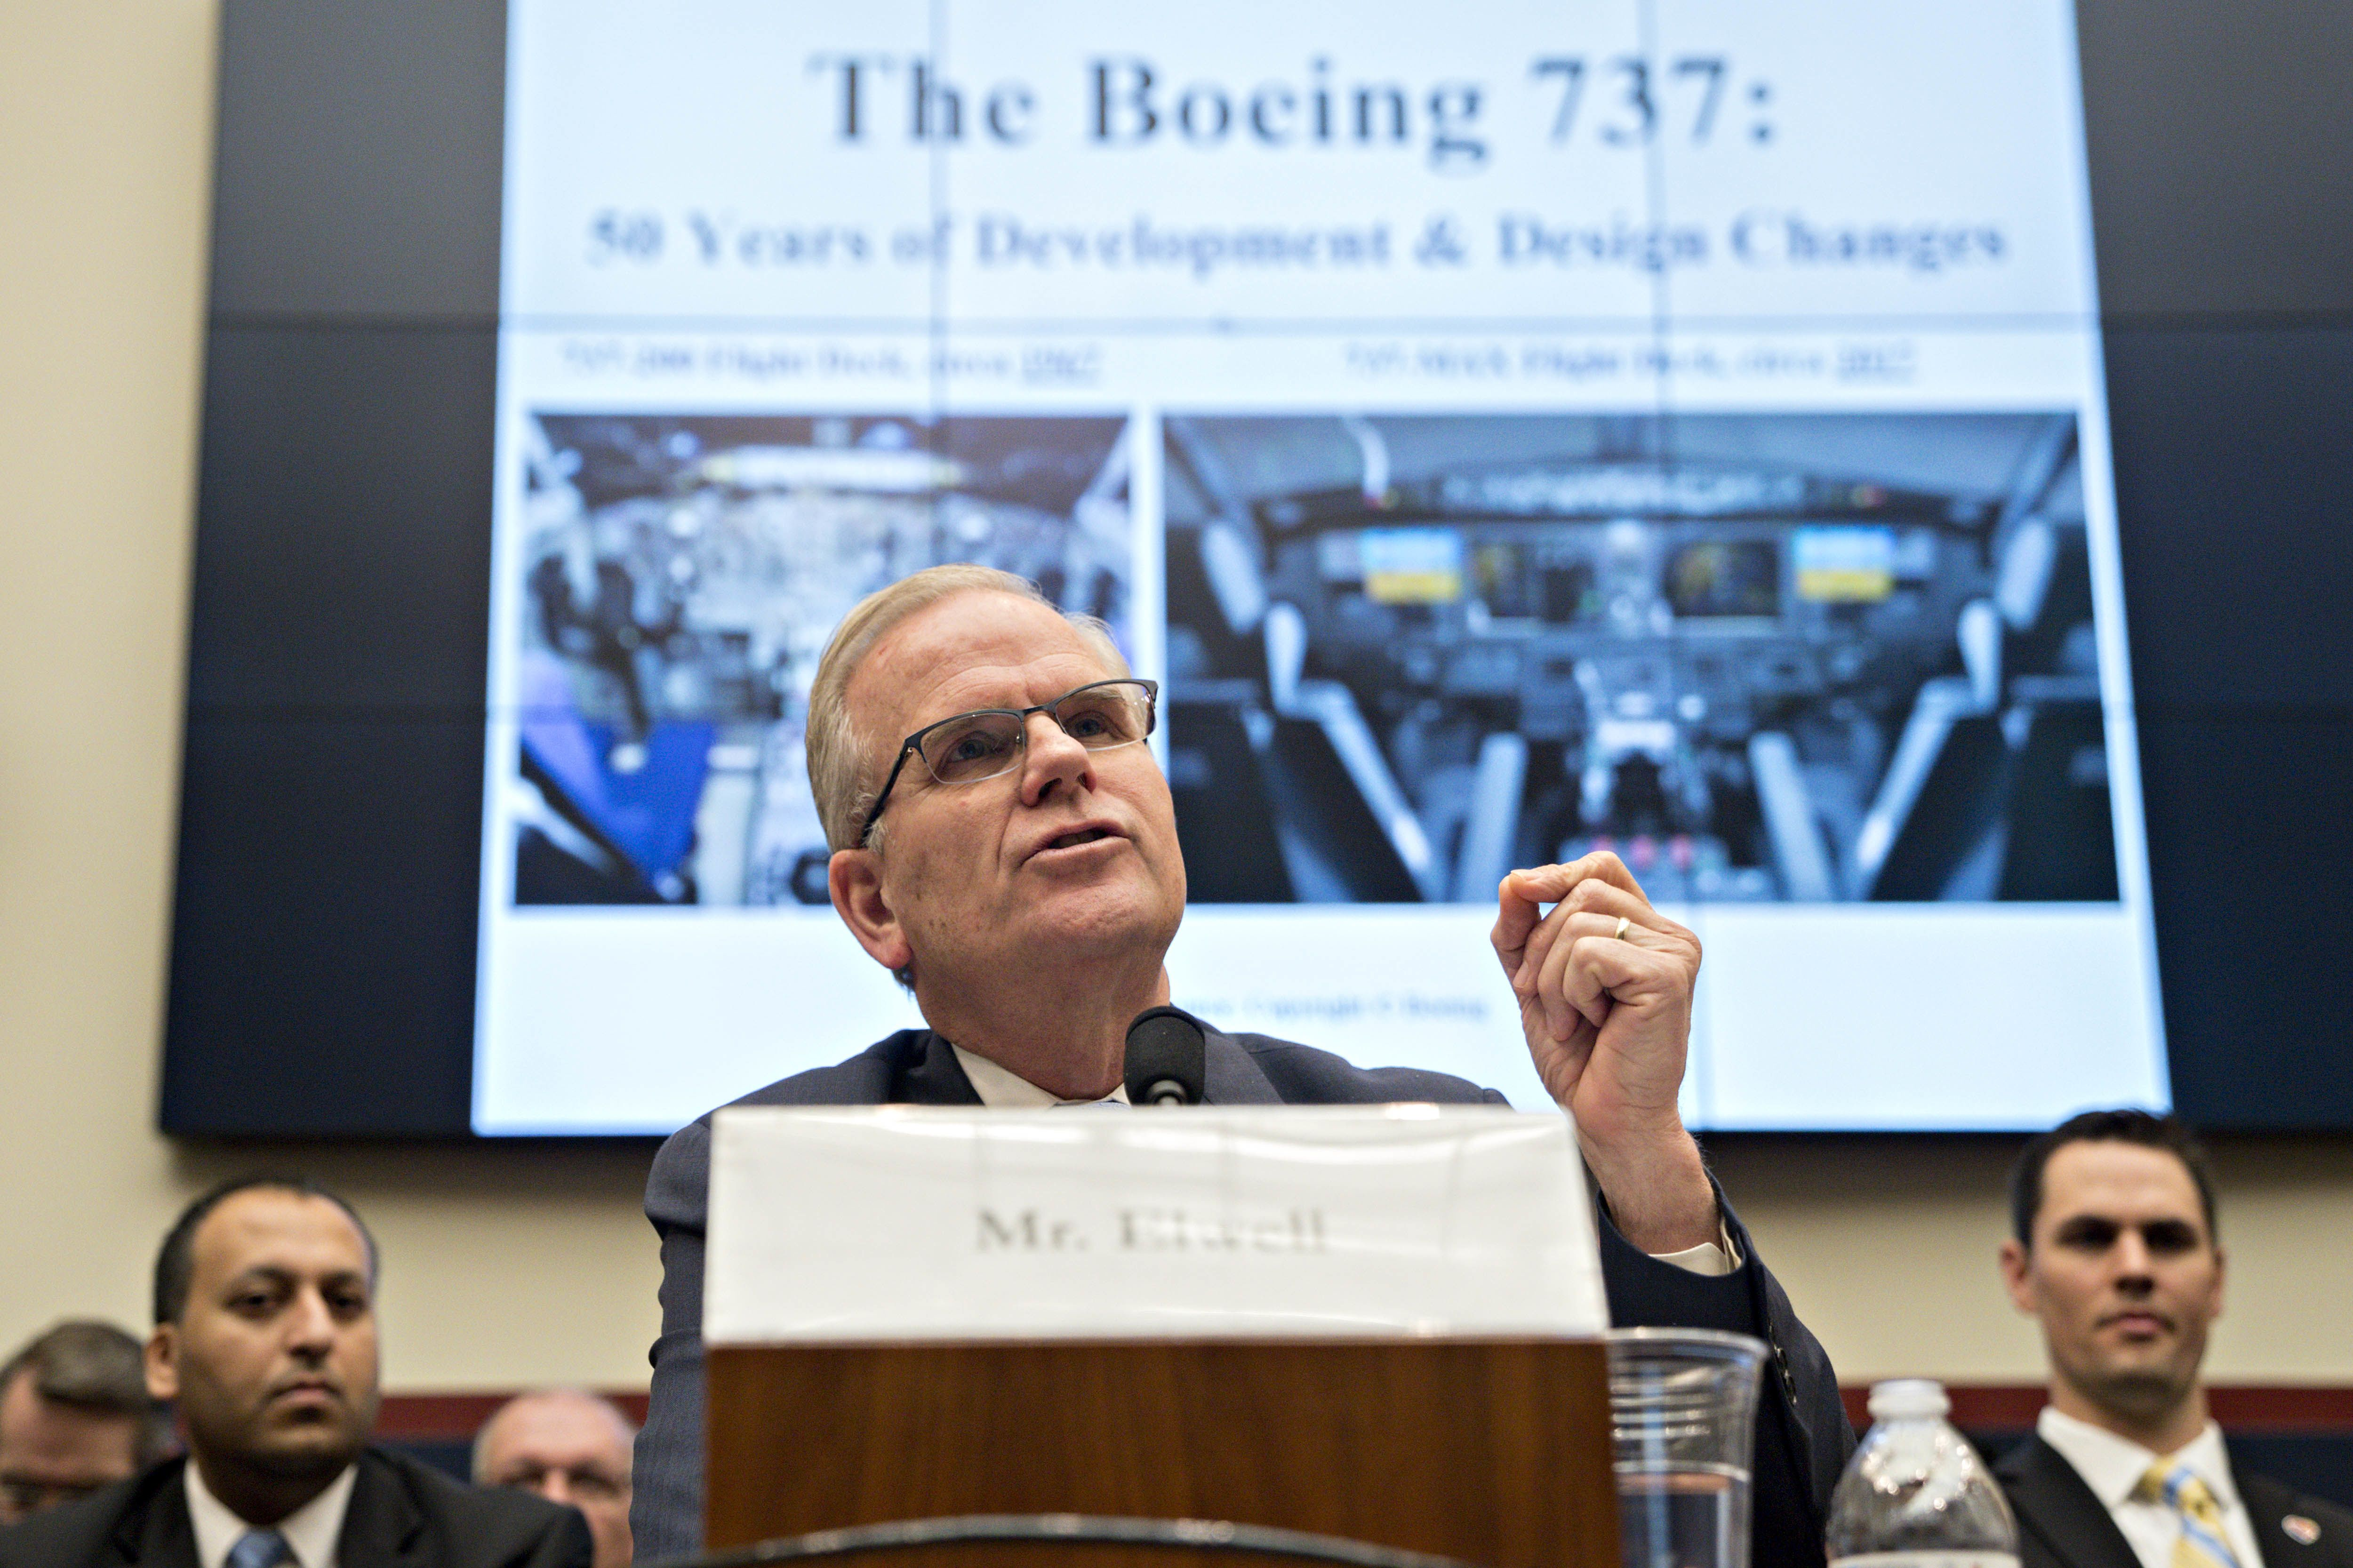 Airlines don't need to make changes to 737 Max plans